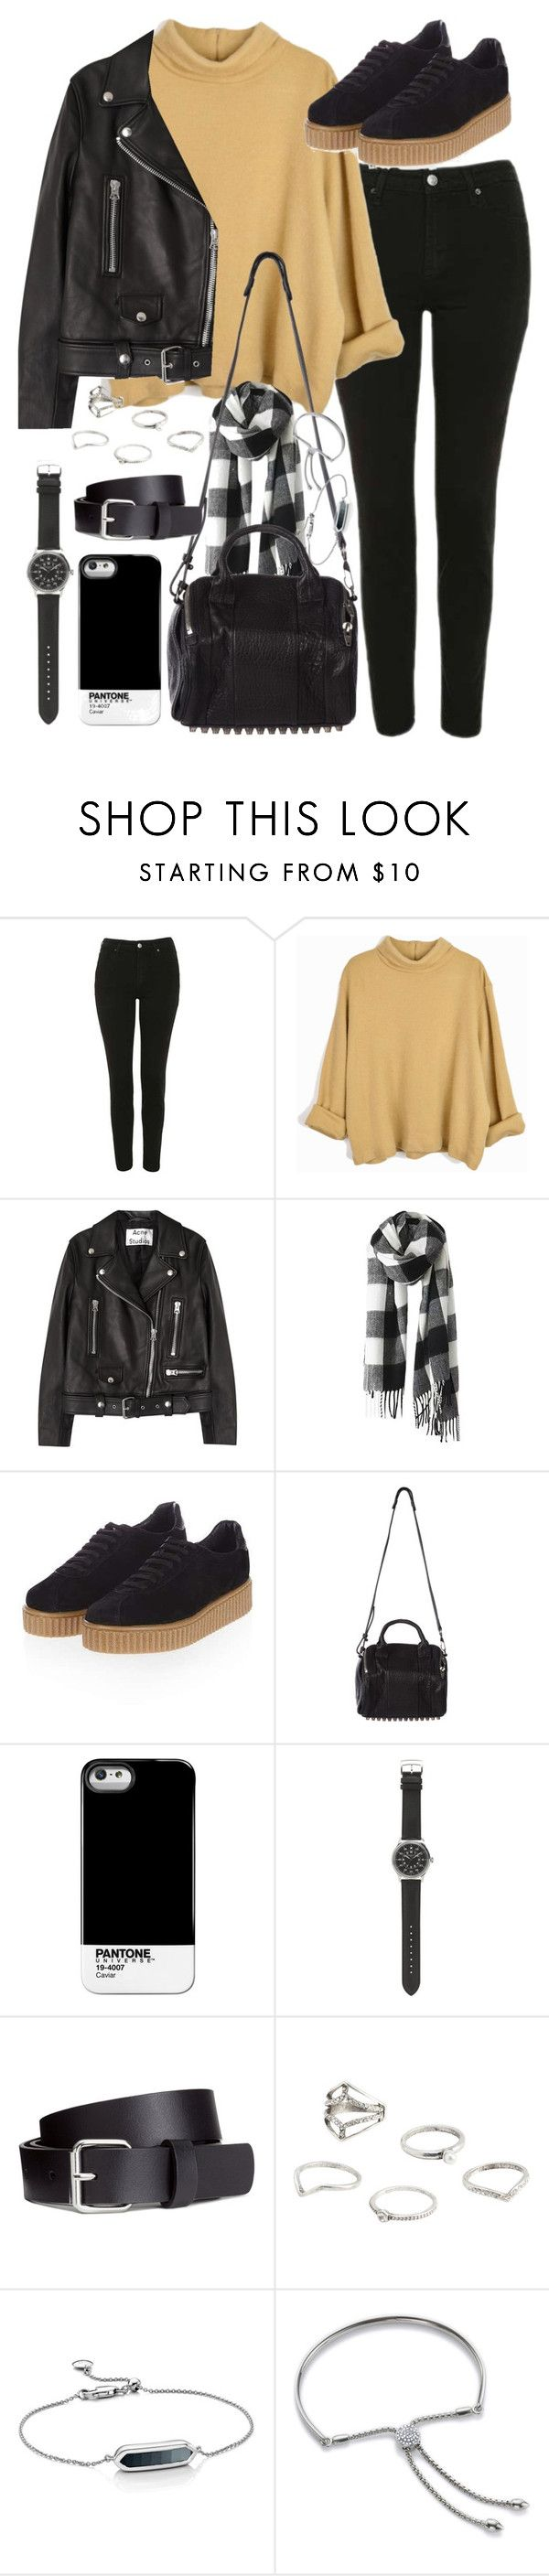 """outfit for a causal day with topshop creepers"" by ferned on Polyvore featuring Topshop, Acne Studios, Alexander Wang, Case Scenario, J.Crew, H&M, MANGO and Monica Vinader"